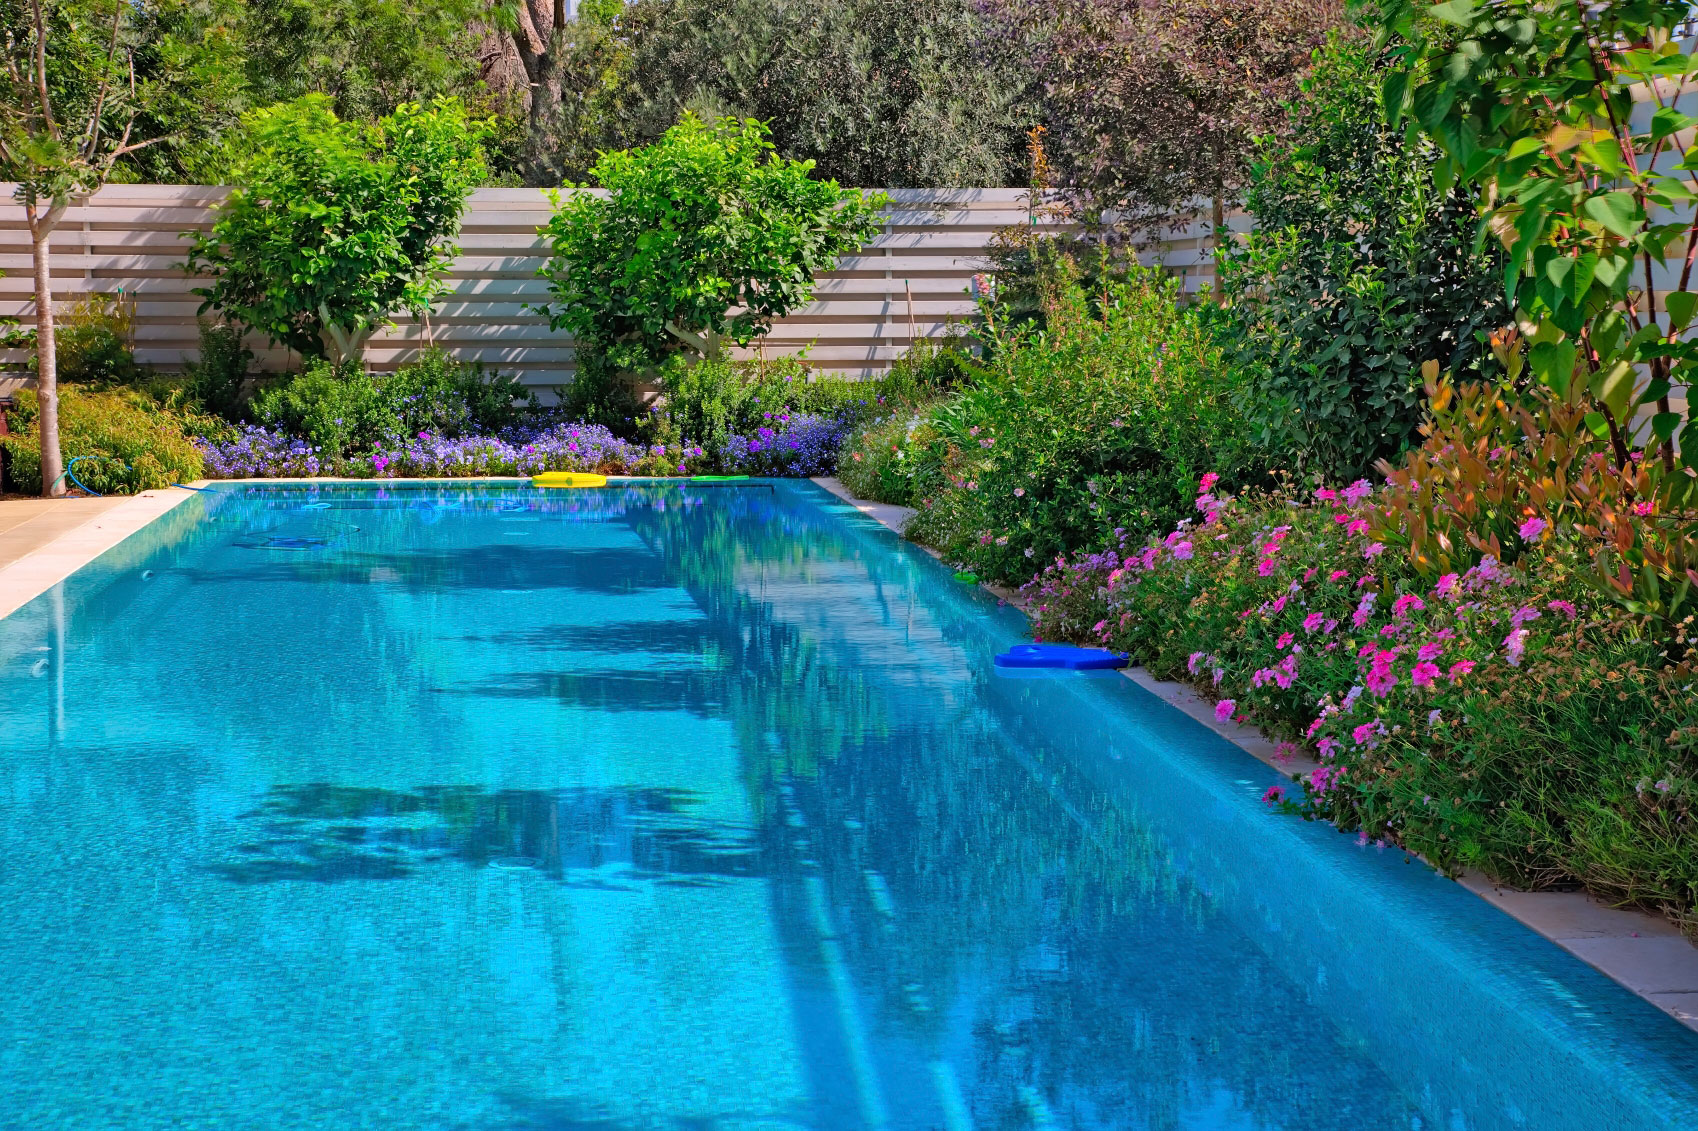 Poolside gardens what are some poolside plants Best plants for swimming pool landscaping